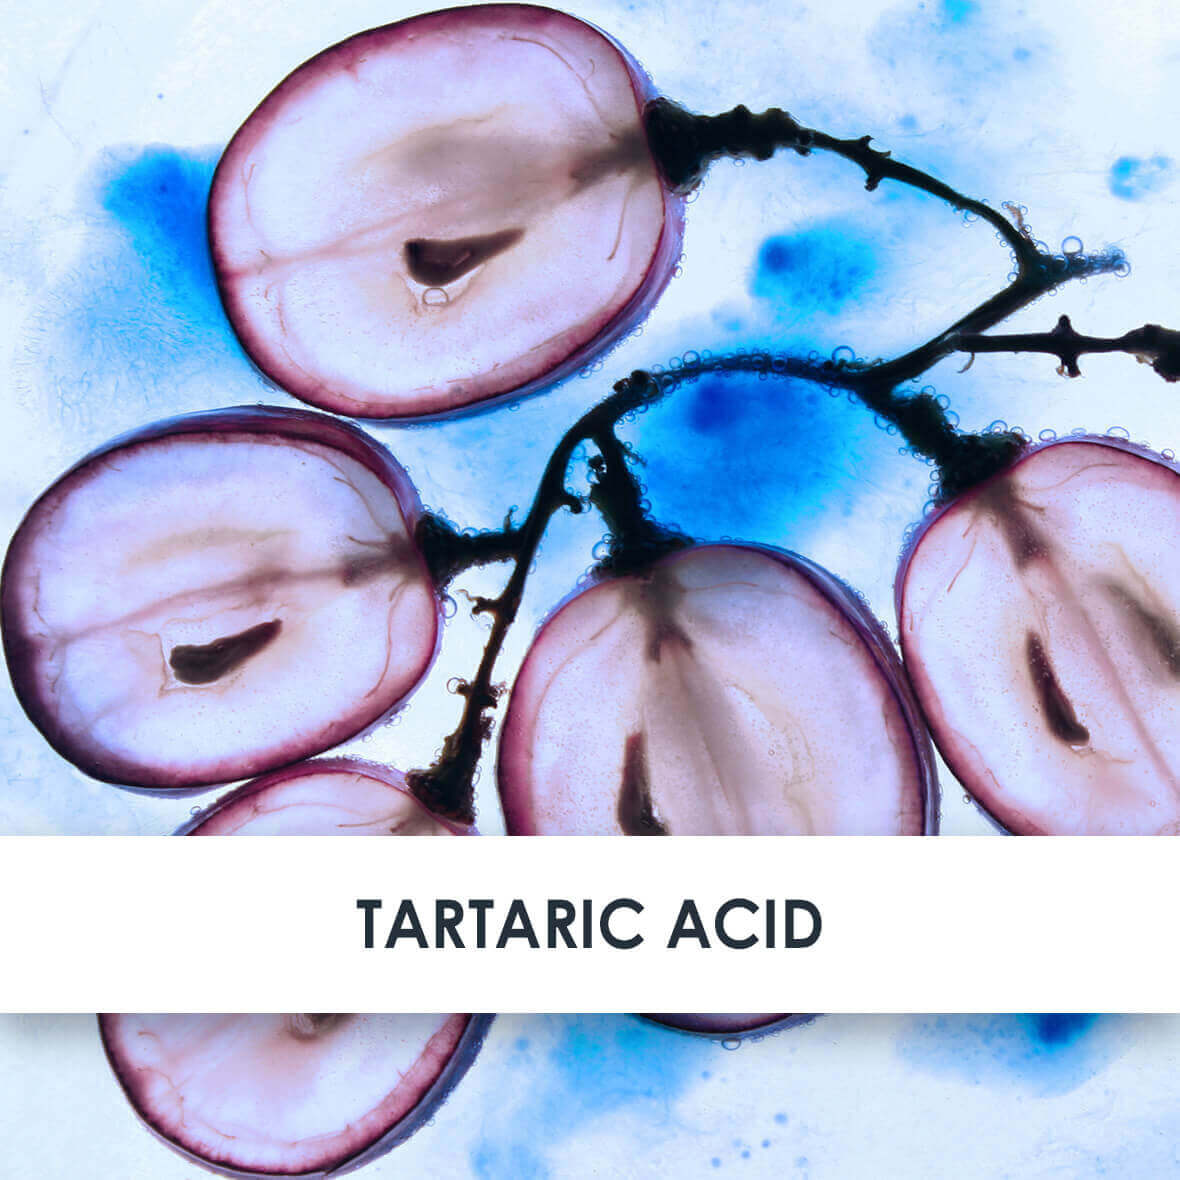 Tartaric Acid Skincare Benefits